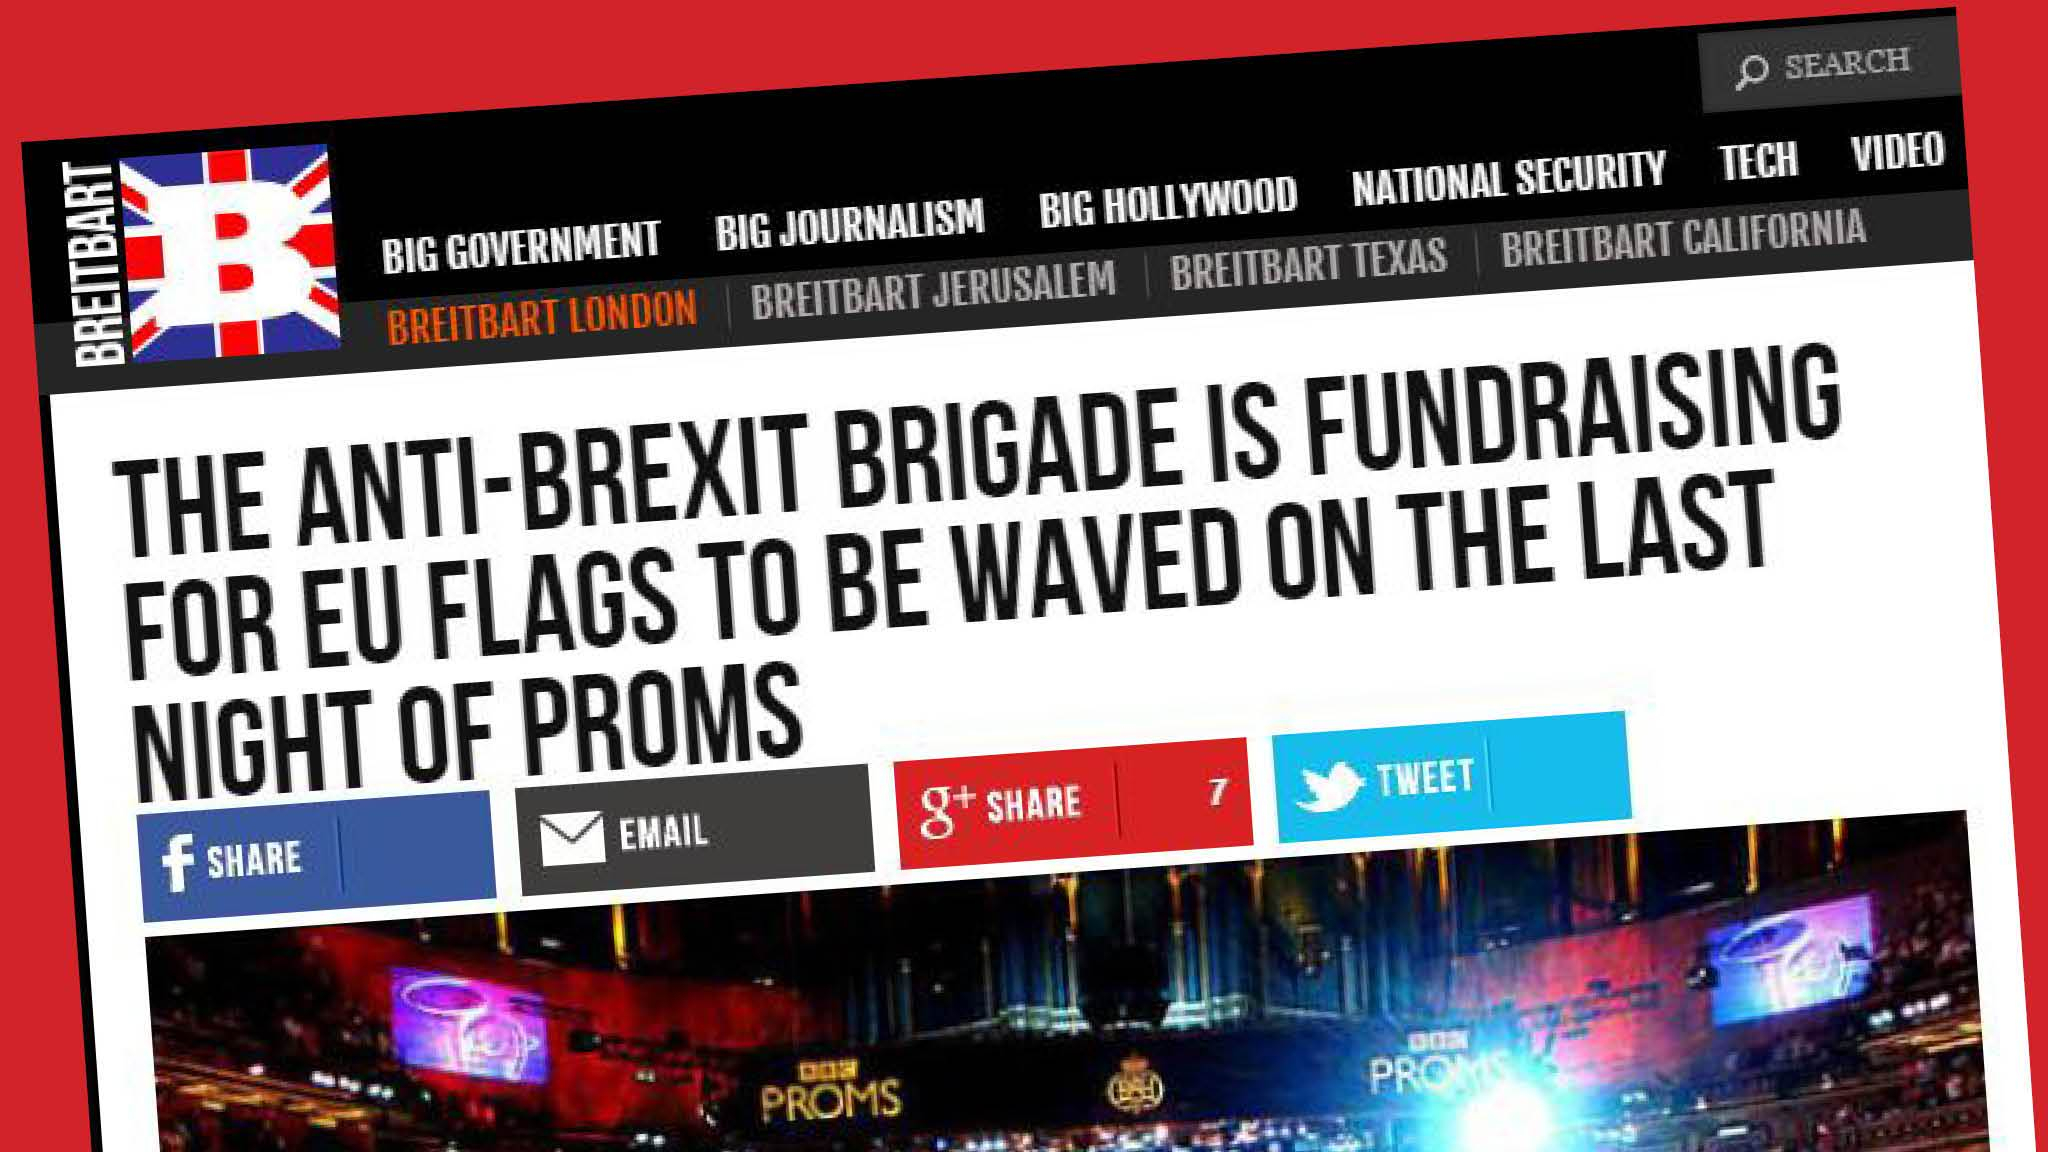 Breitbart News grows rapidly to tap European rightwing anger